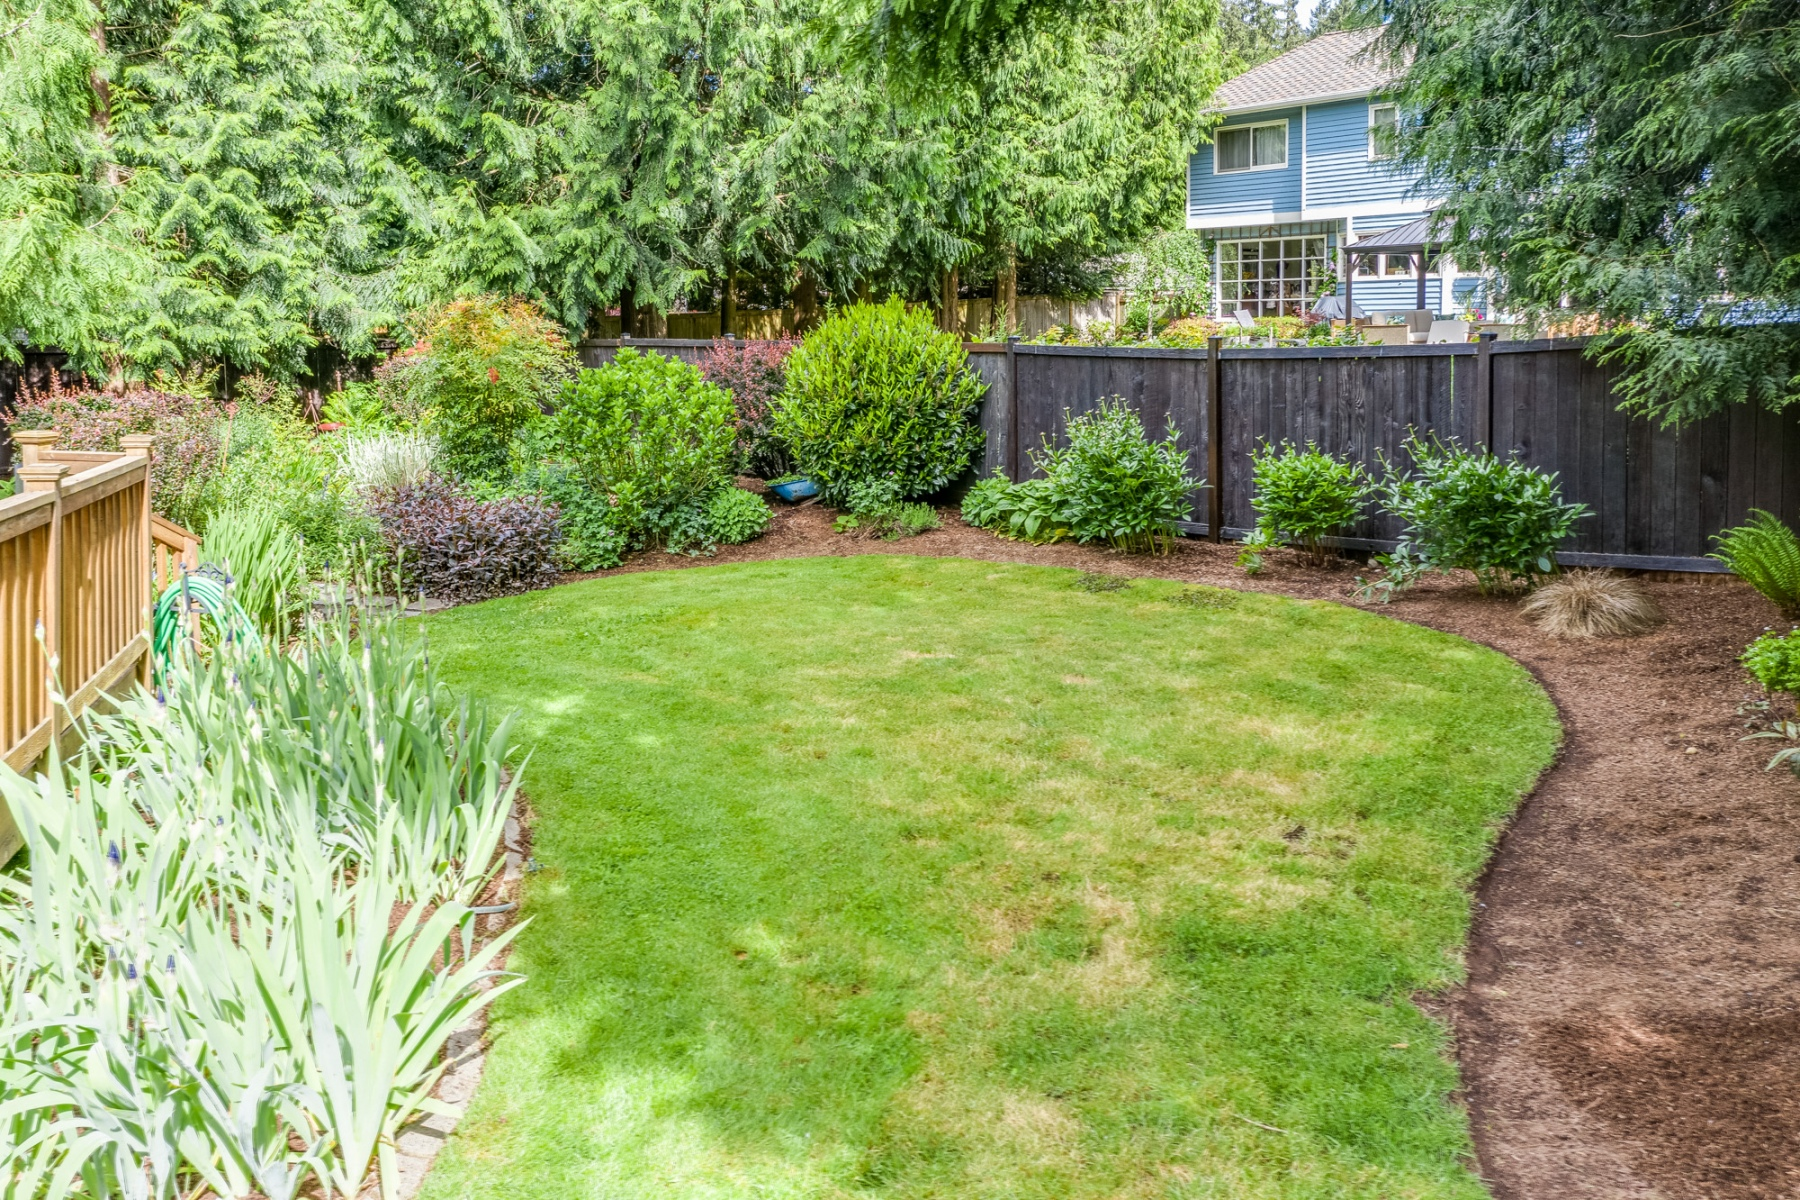 14153-176th-Ave-NE-Redmond-37